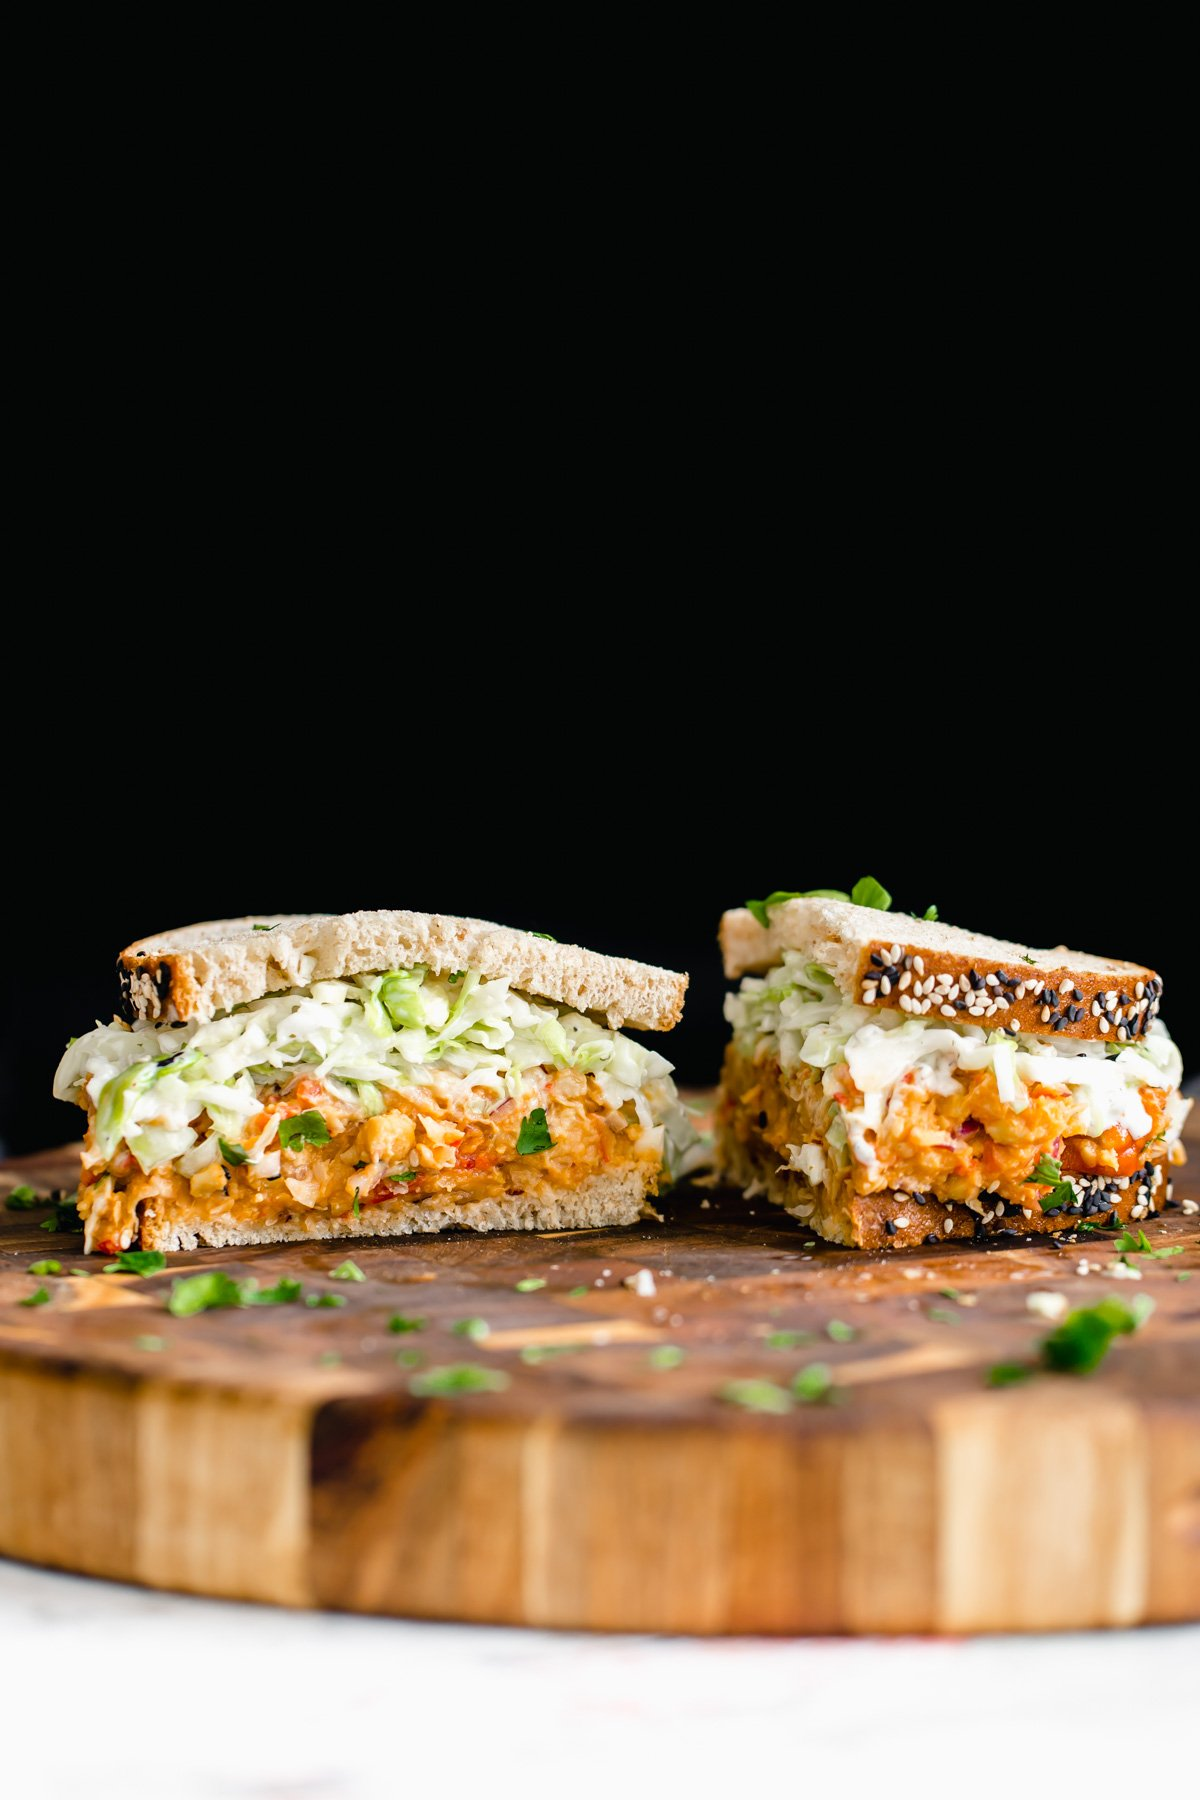 a halved chickpea salad sandwich on a wooden board